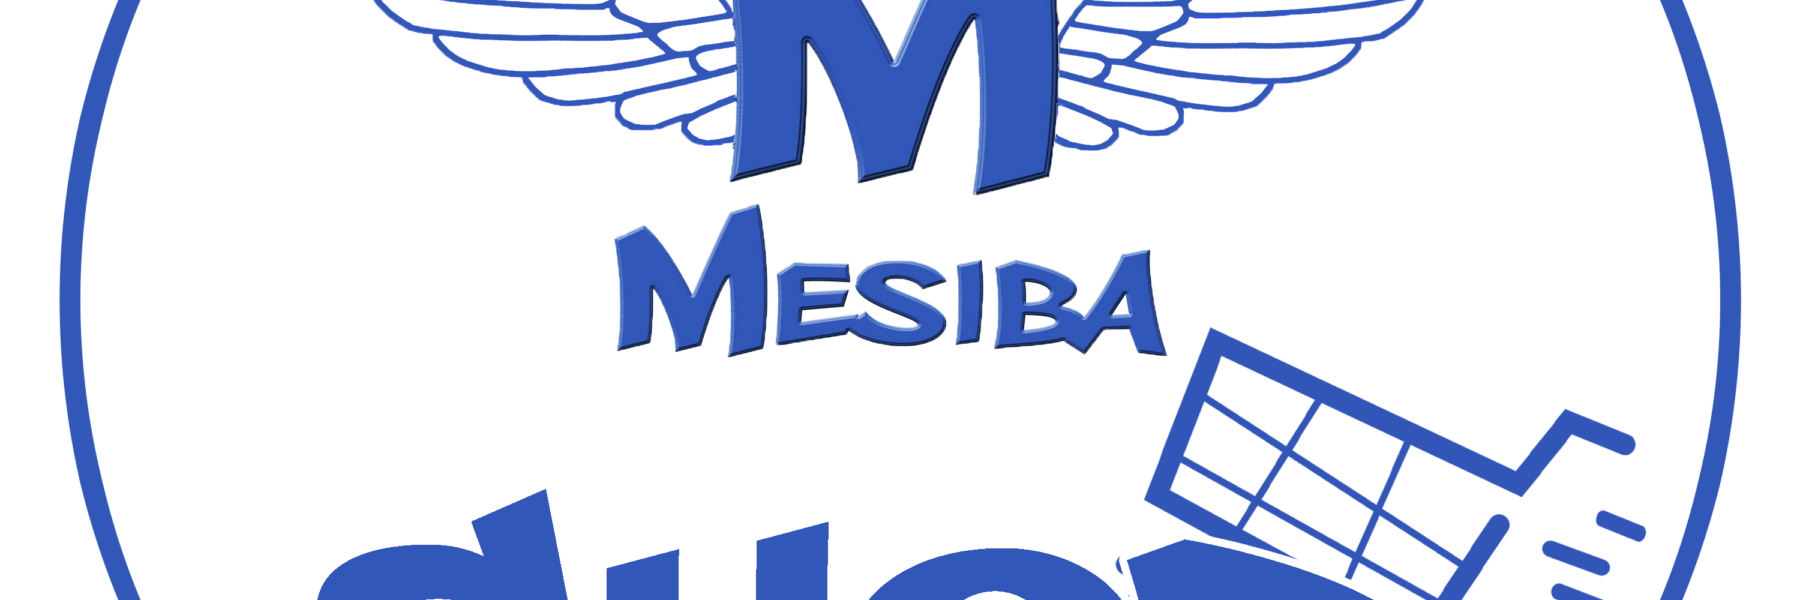 LOGO-MESIBA-SHOP